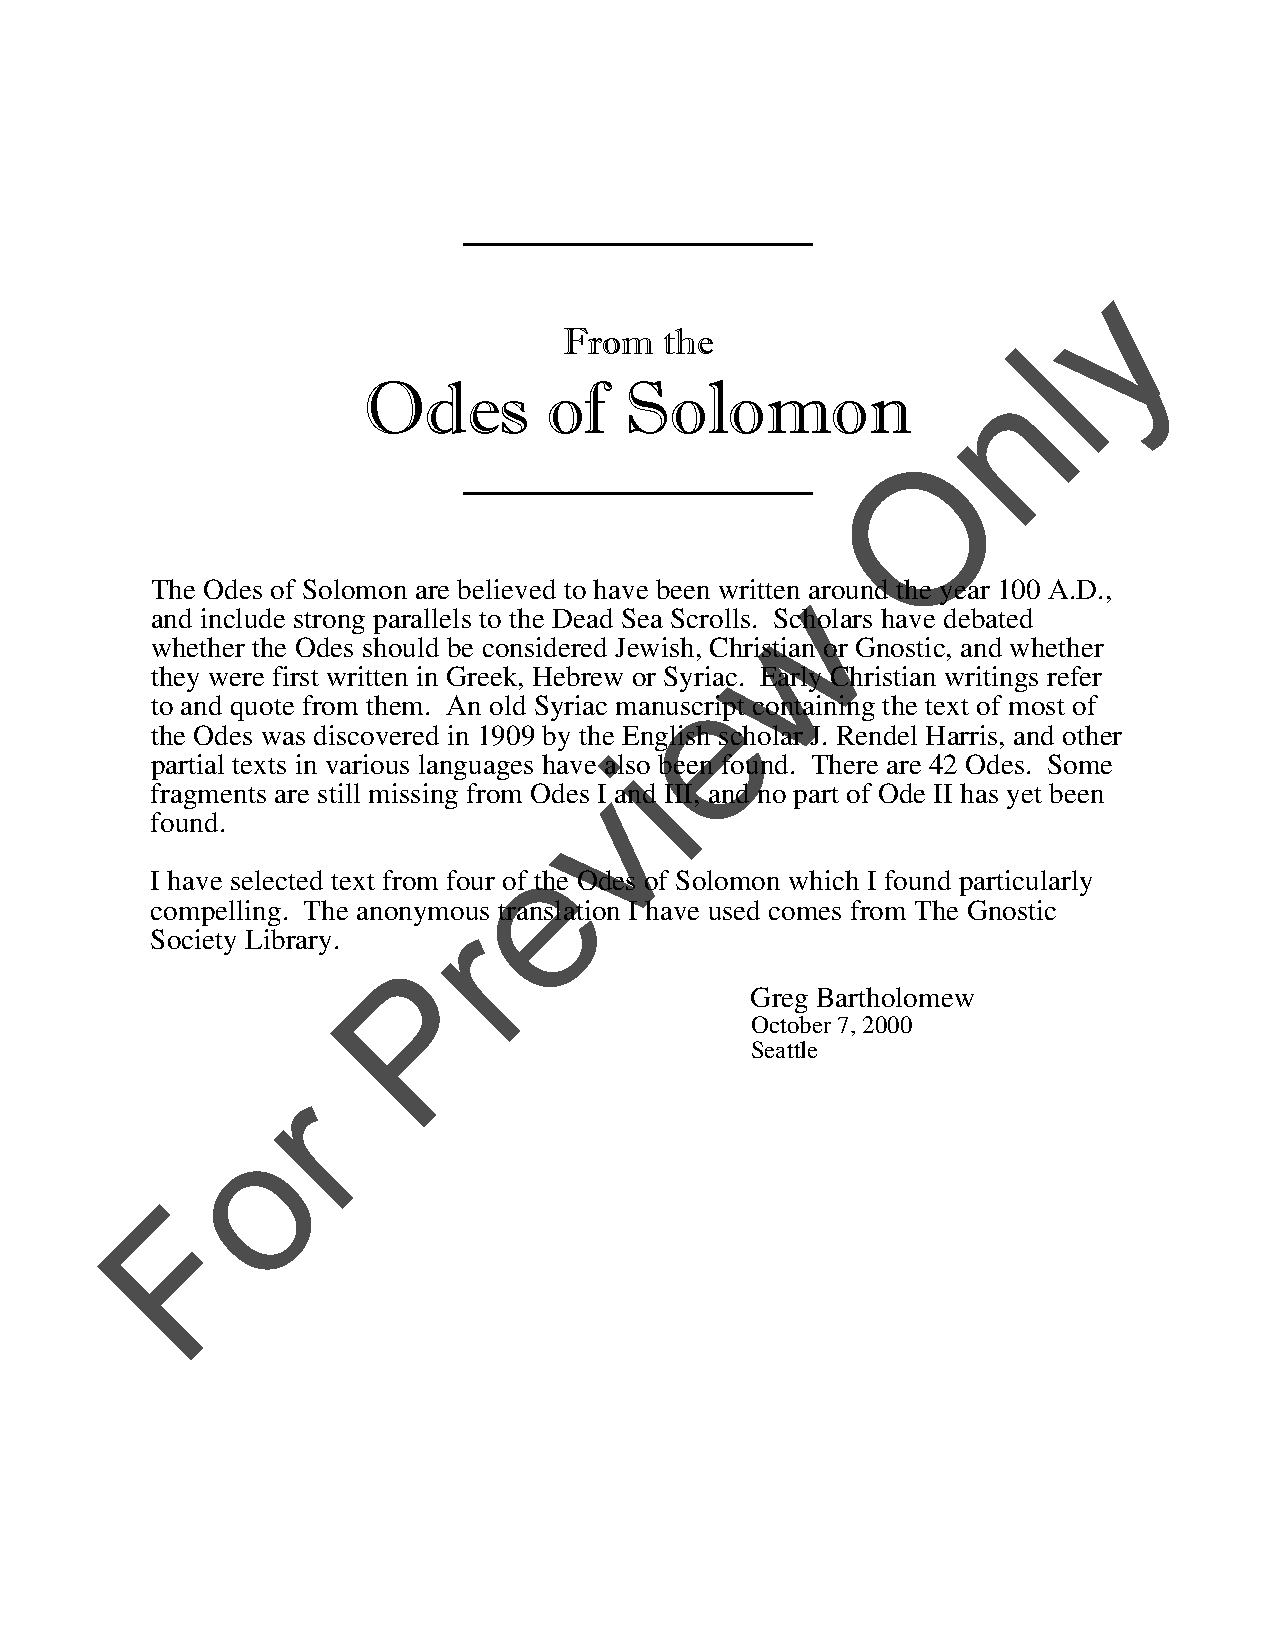 From the Odes of Solomon Thumbnail